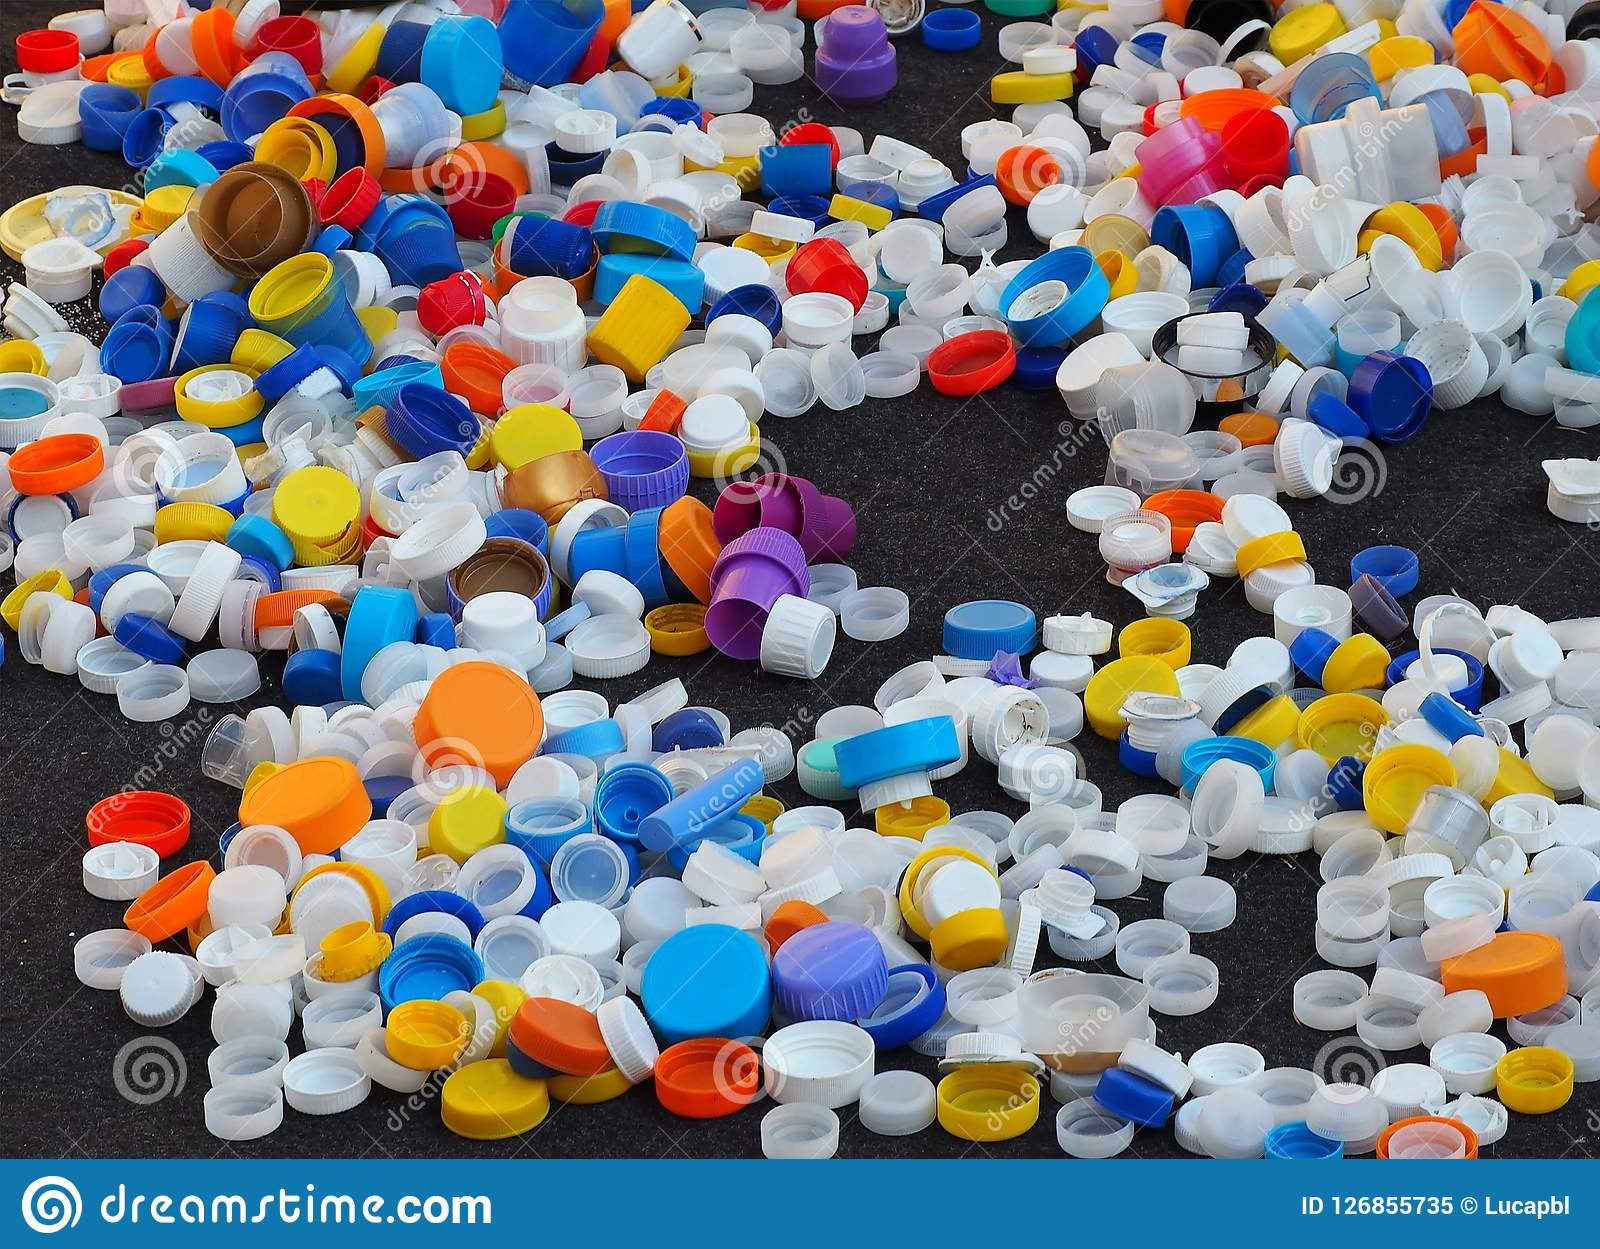 Bottle Caps And Other Types Of Plastic Caps Scattered On A Black